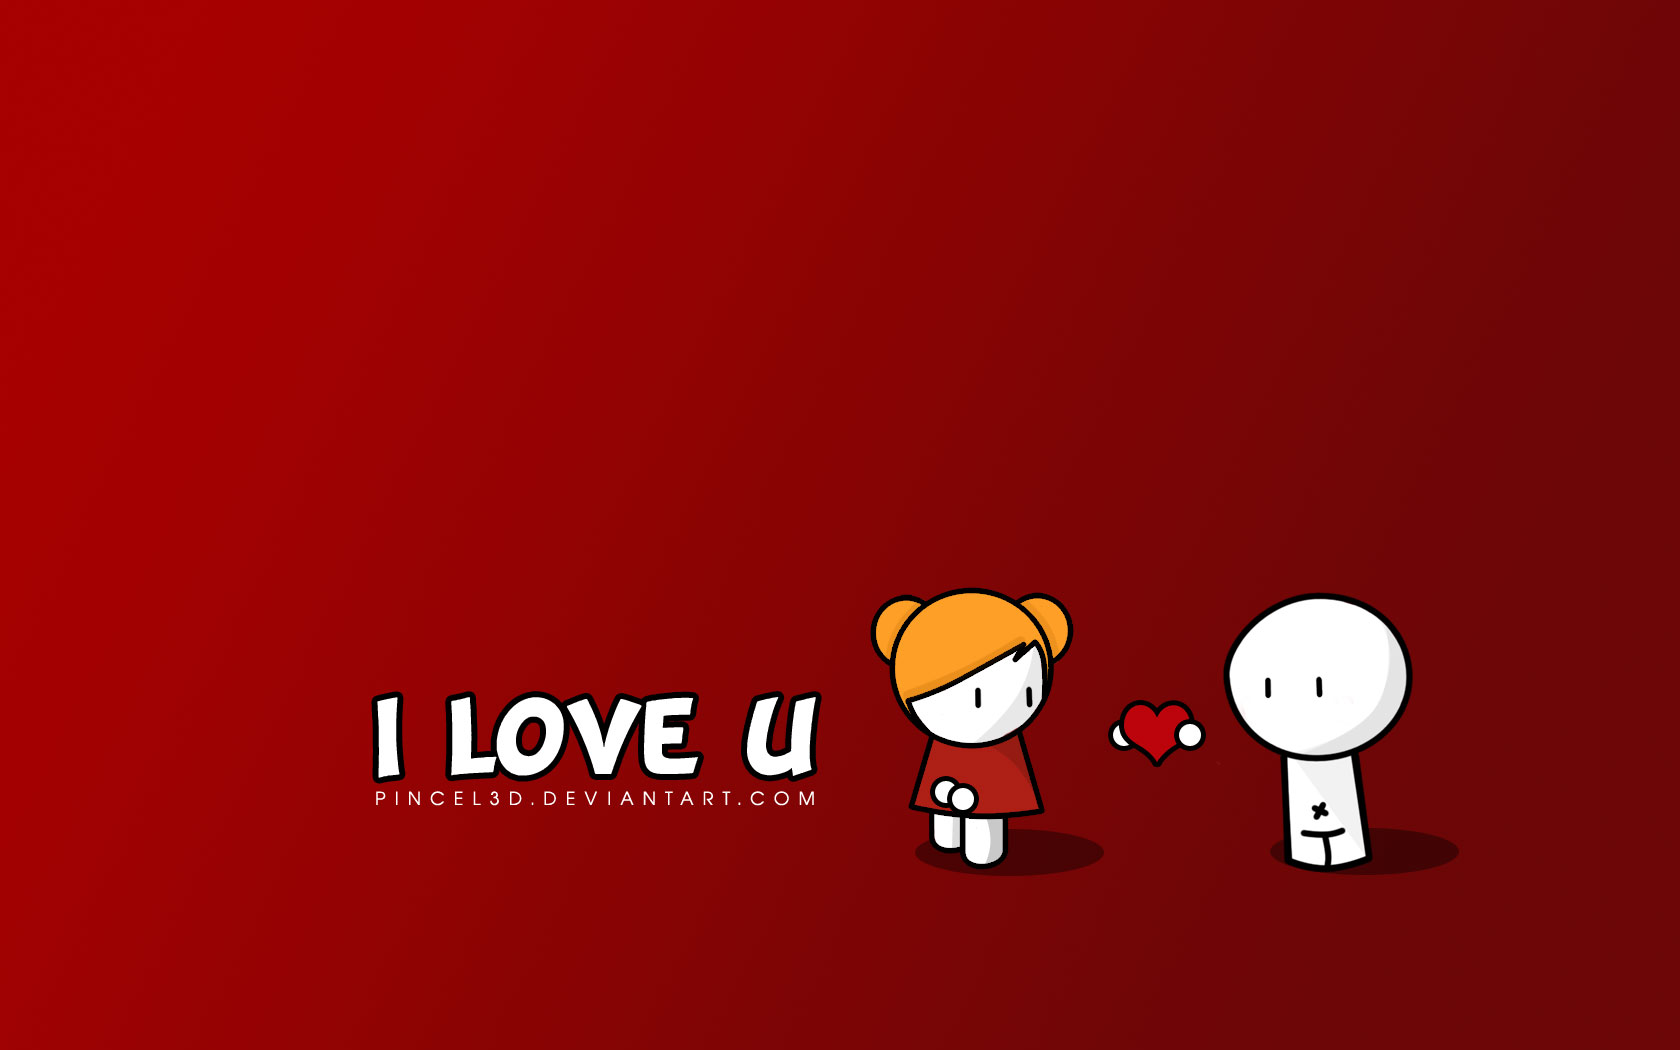 I Love You Wallpapers HD A40 - HD Desktop Wallpapers 4k HD